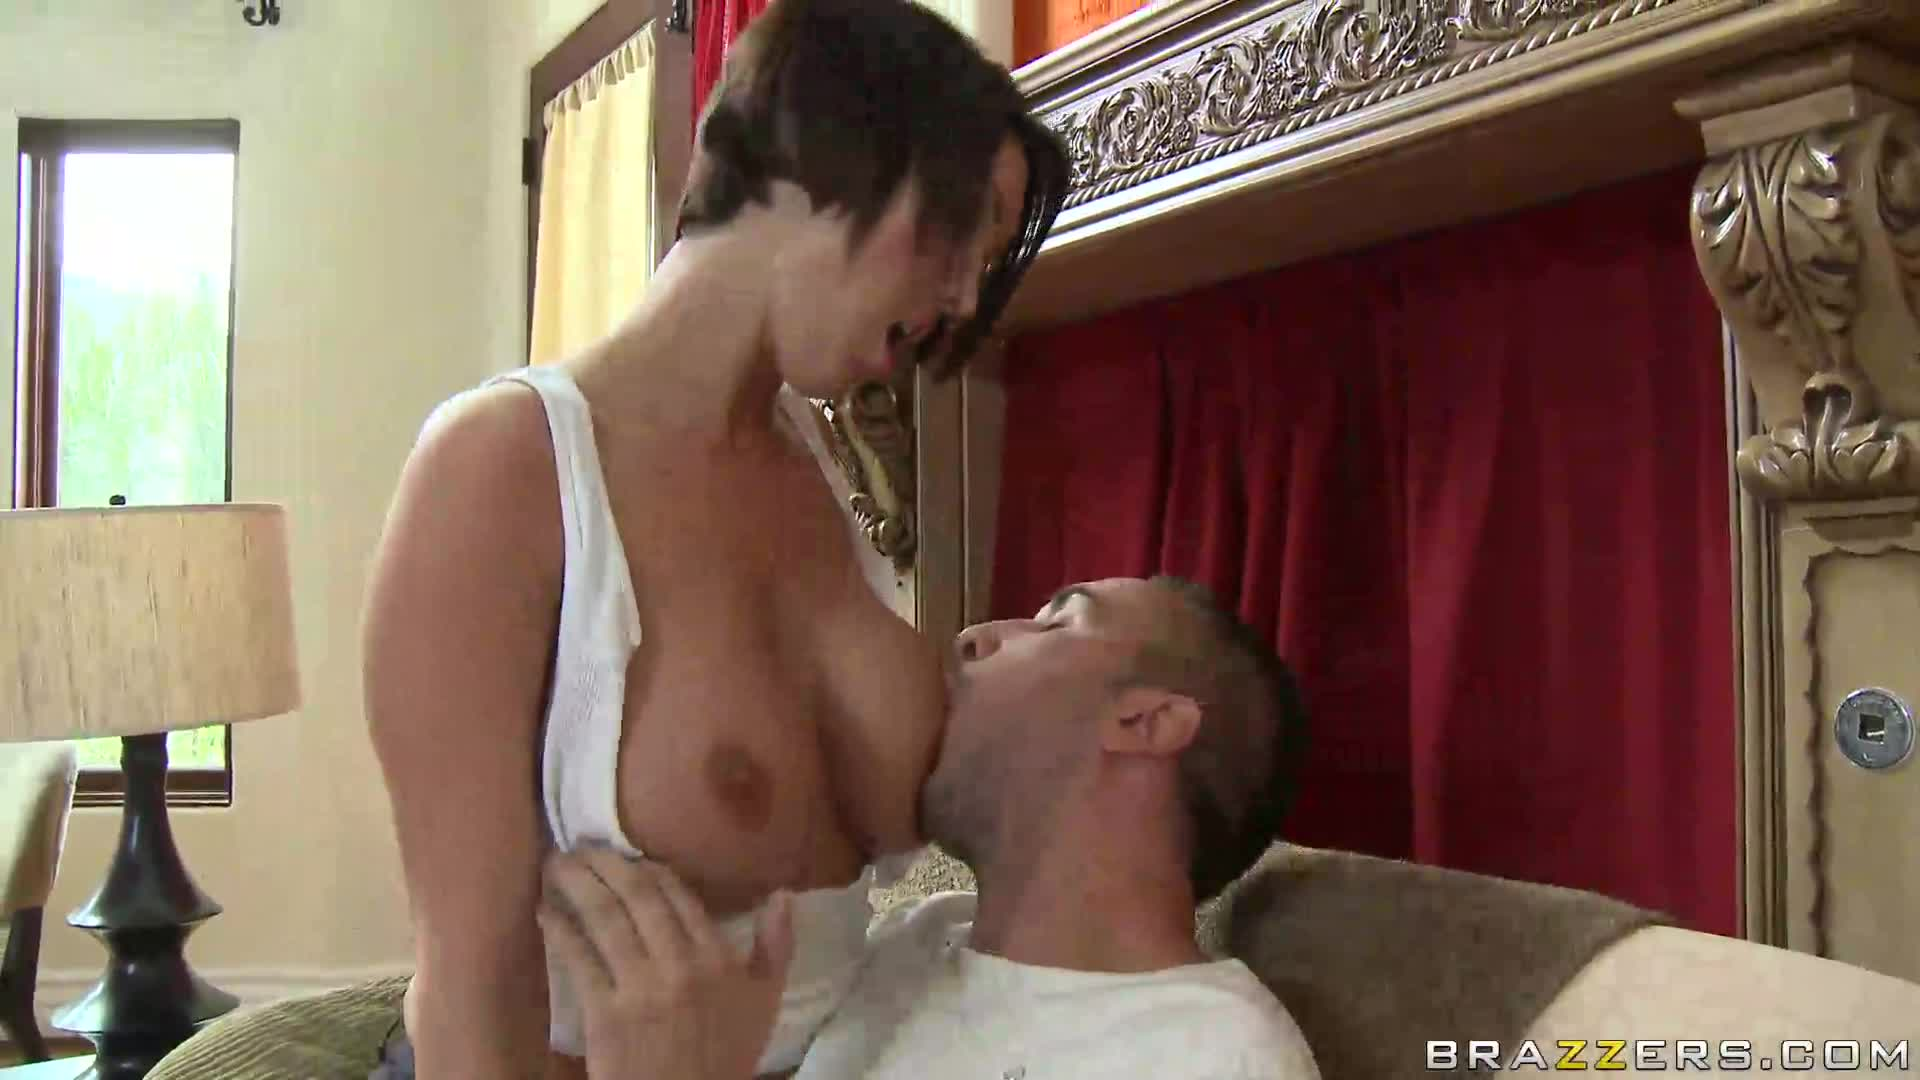 There girls sex and boobs bouching final